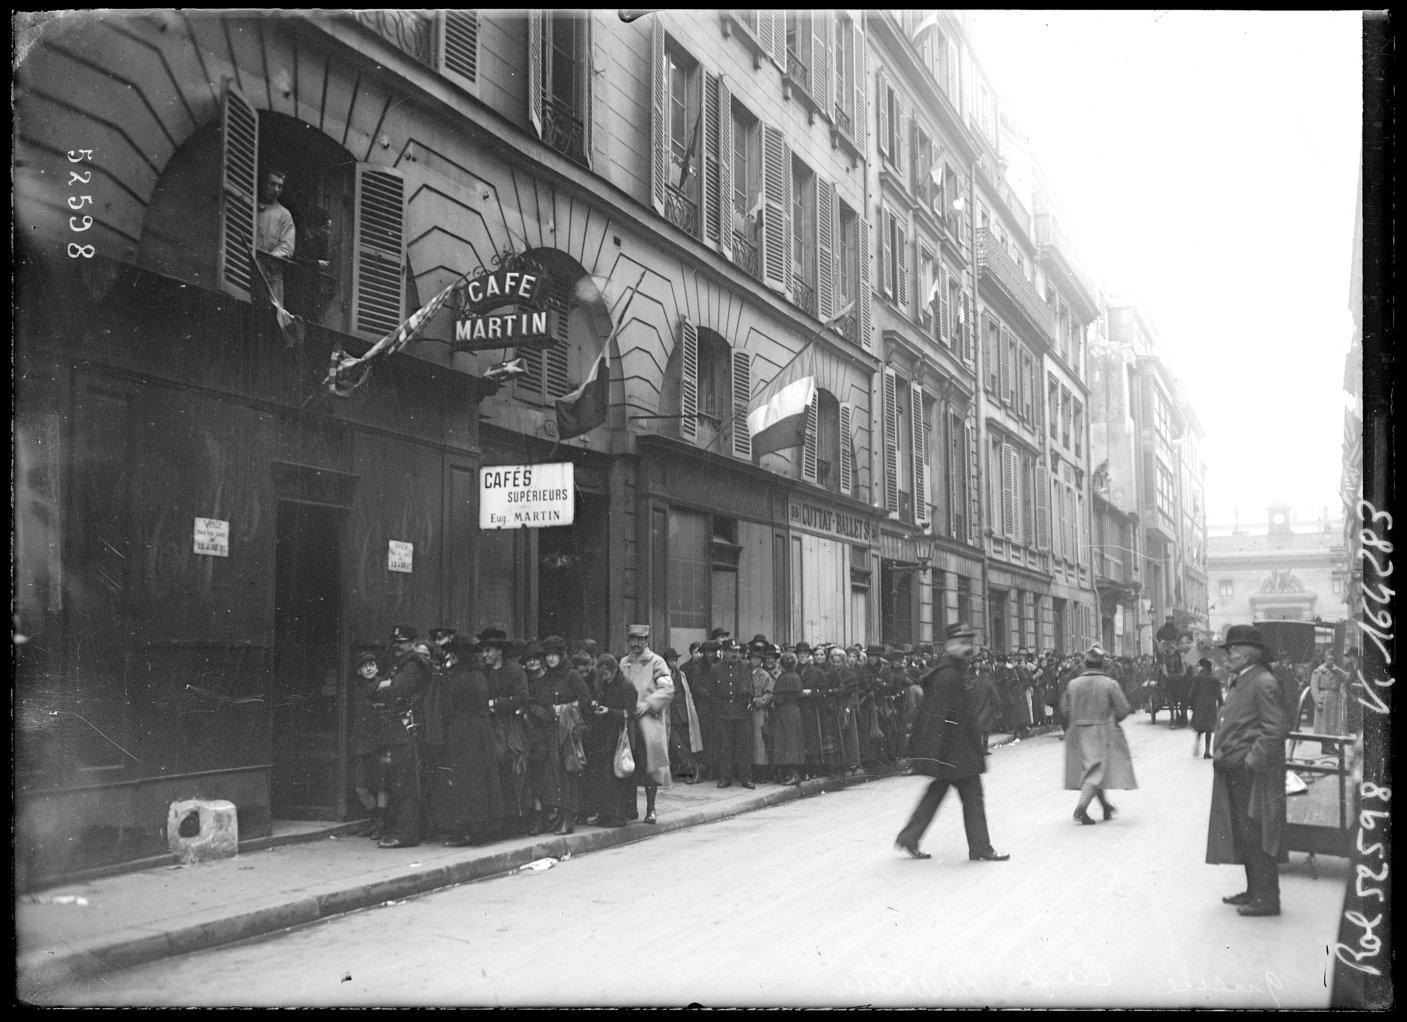 Taken a month after the end of the war, this photograph shows civilians queuing to buy coffee at Café Martin in Paris. Rationing continued in France even after the end of the First World War.